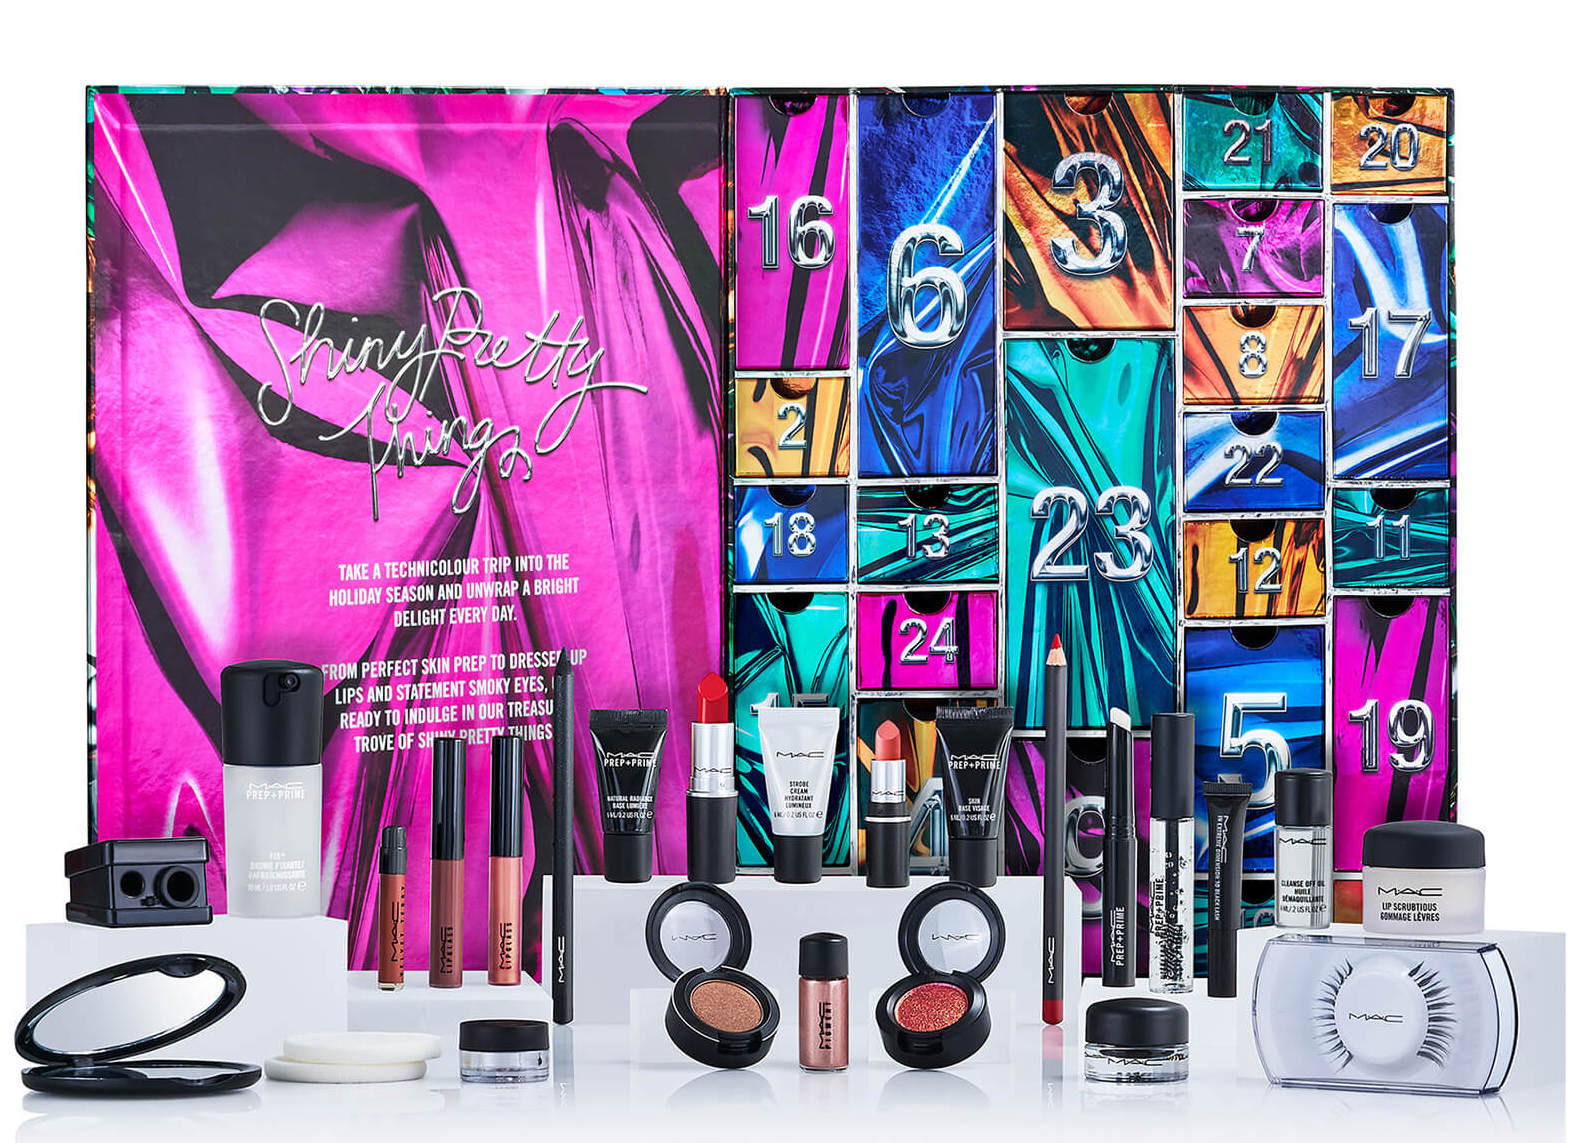 calendario dell'avvento beauty 2018